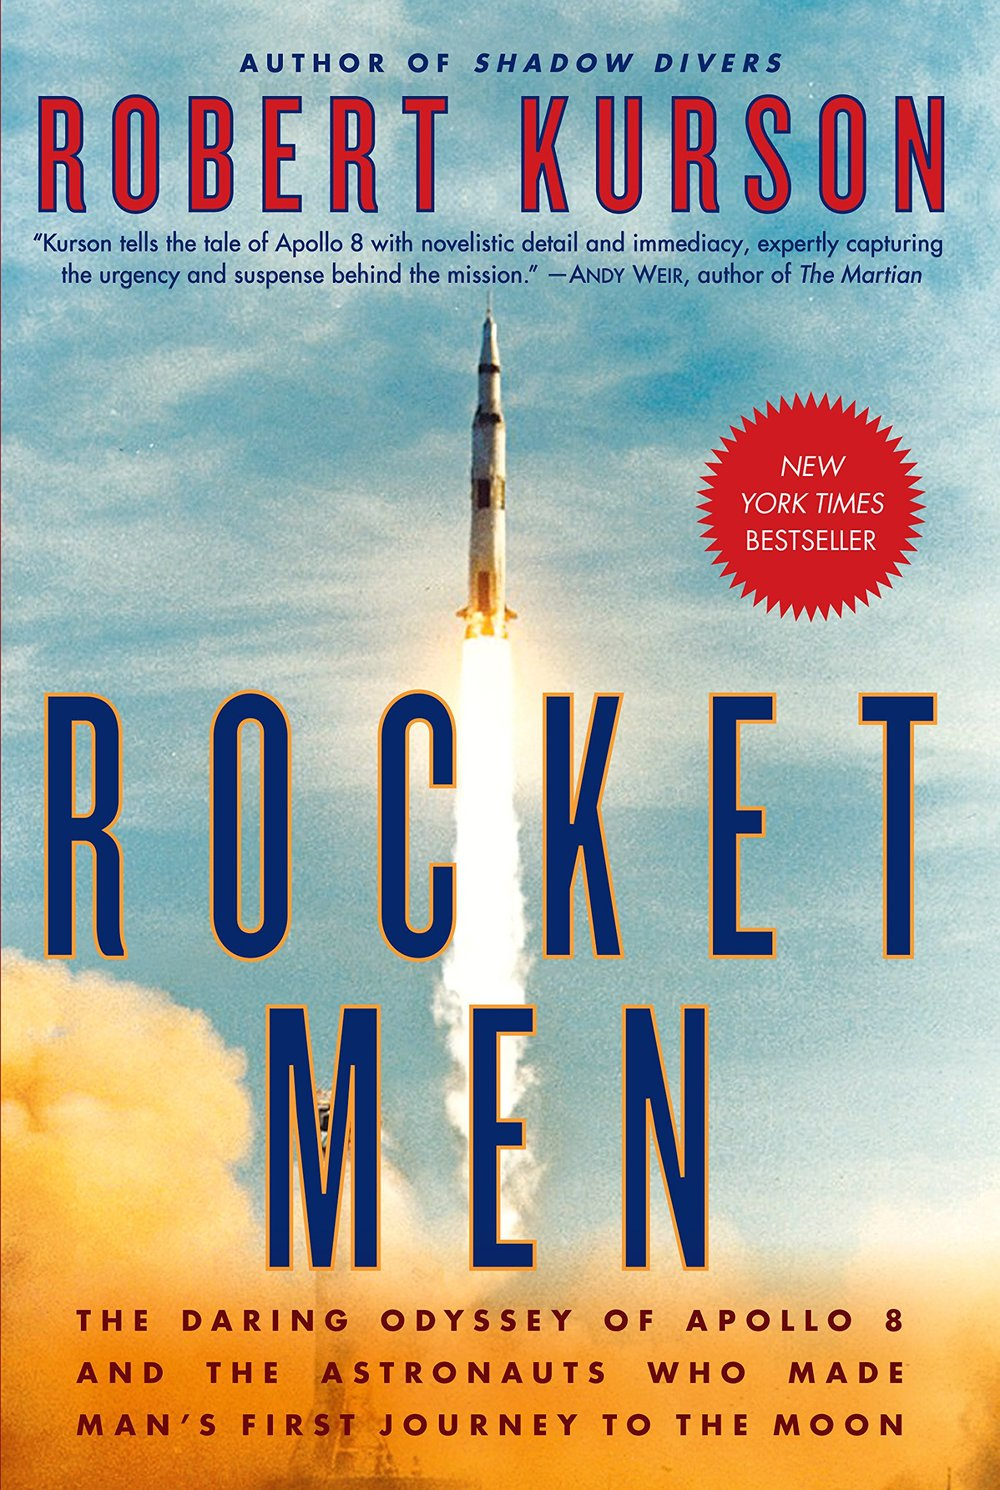 Rocket Men- The Daring Odyssey of Apollo 8 and the Astronauts Who Made Man's First Journey to the Moon by Robert Kurson.jpg